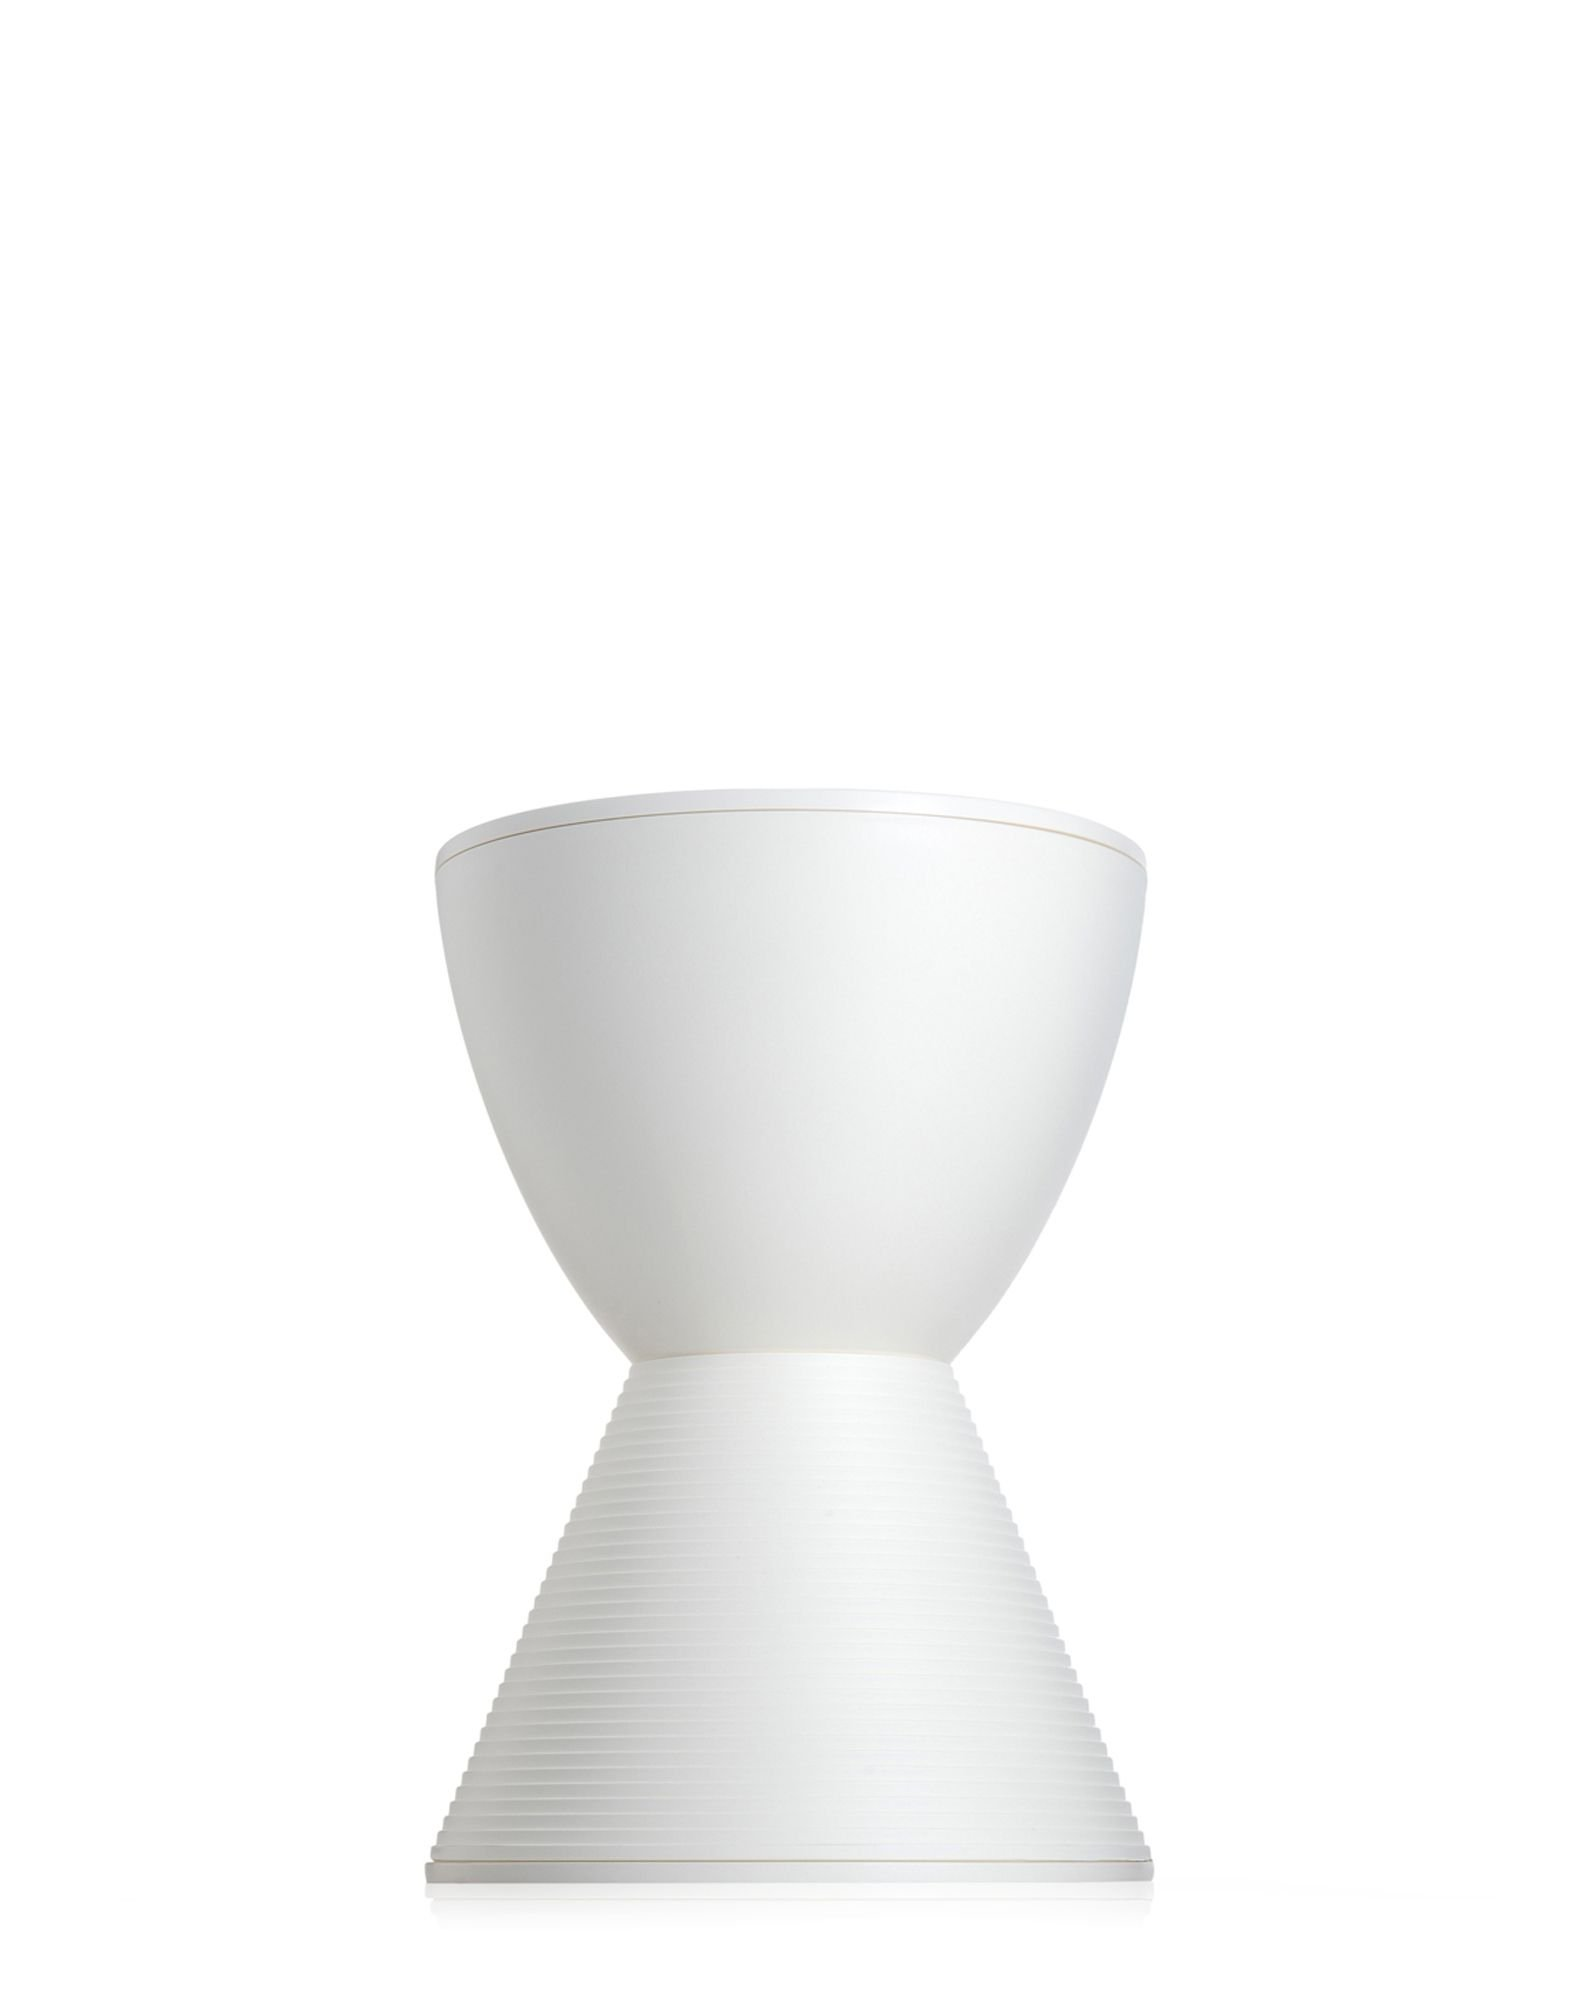 Prince Aha Stool from Kartell